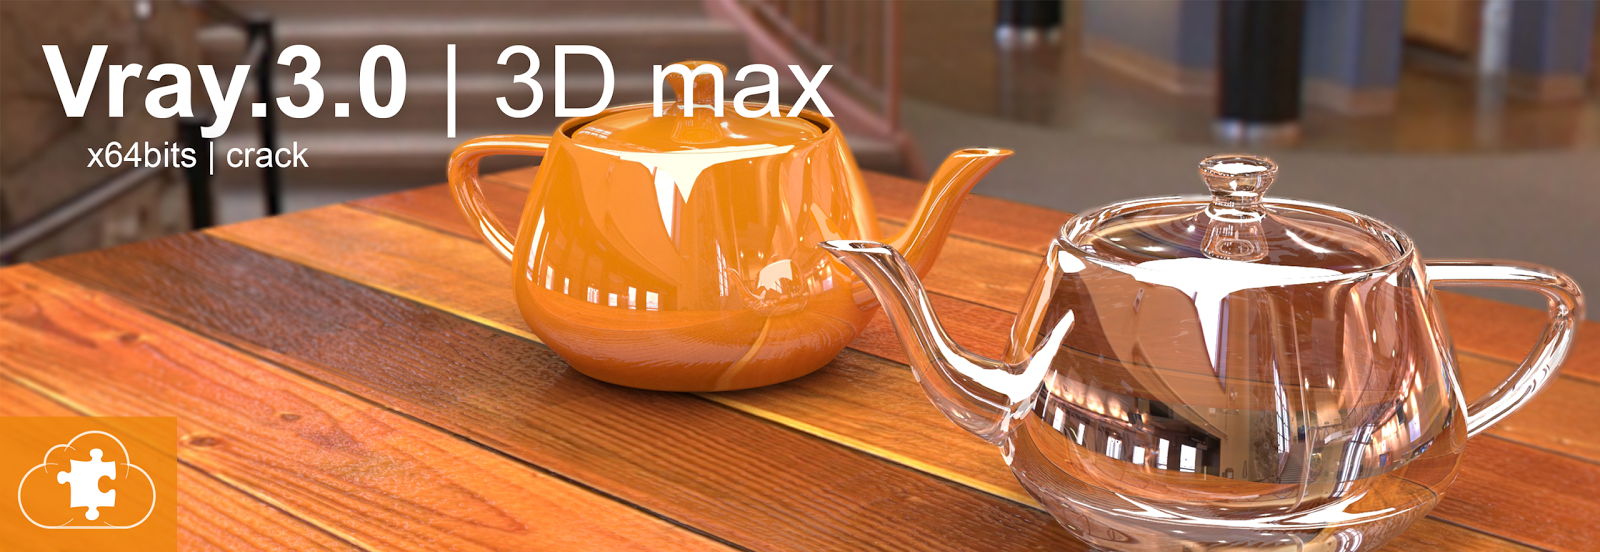 Vray 3.0  |  3Ds max 2014 | x64bits